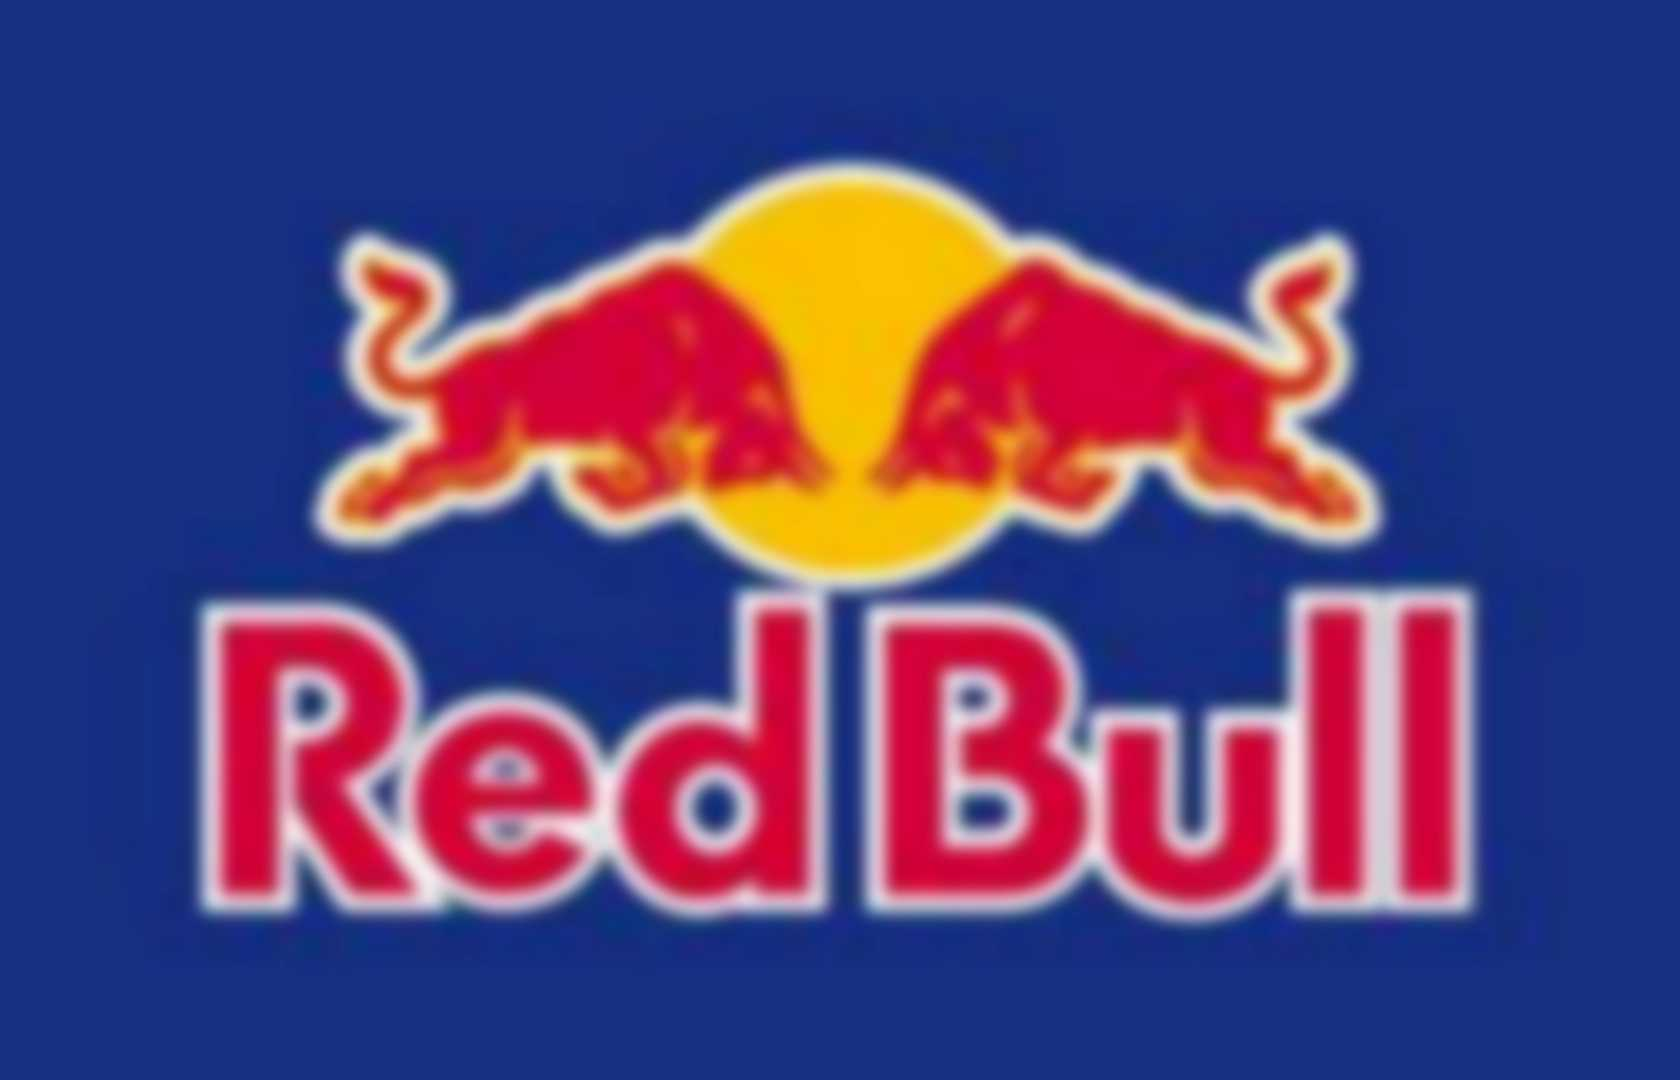 red bull marketing research Red bull is a publishing empire that also happens to sell a beverage a glimpse at the brand's expansive market, made possible by strategic content marketing.